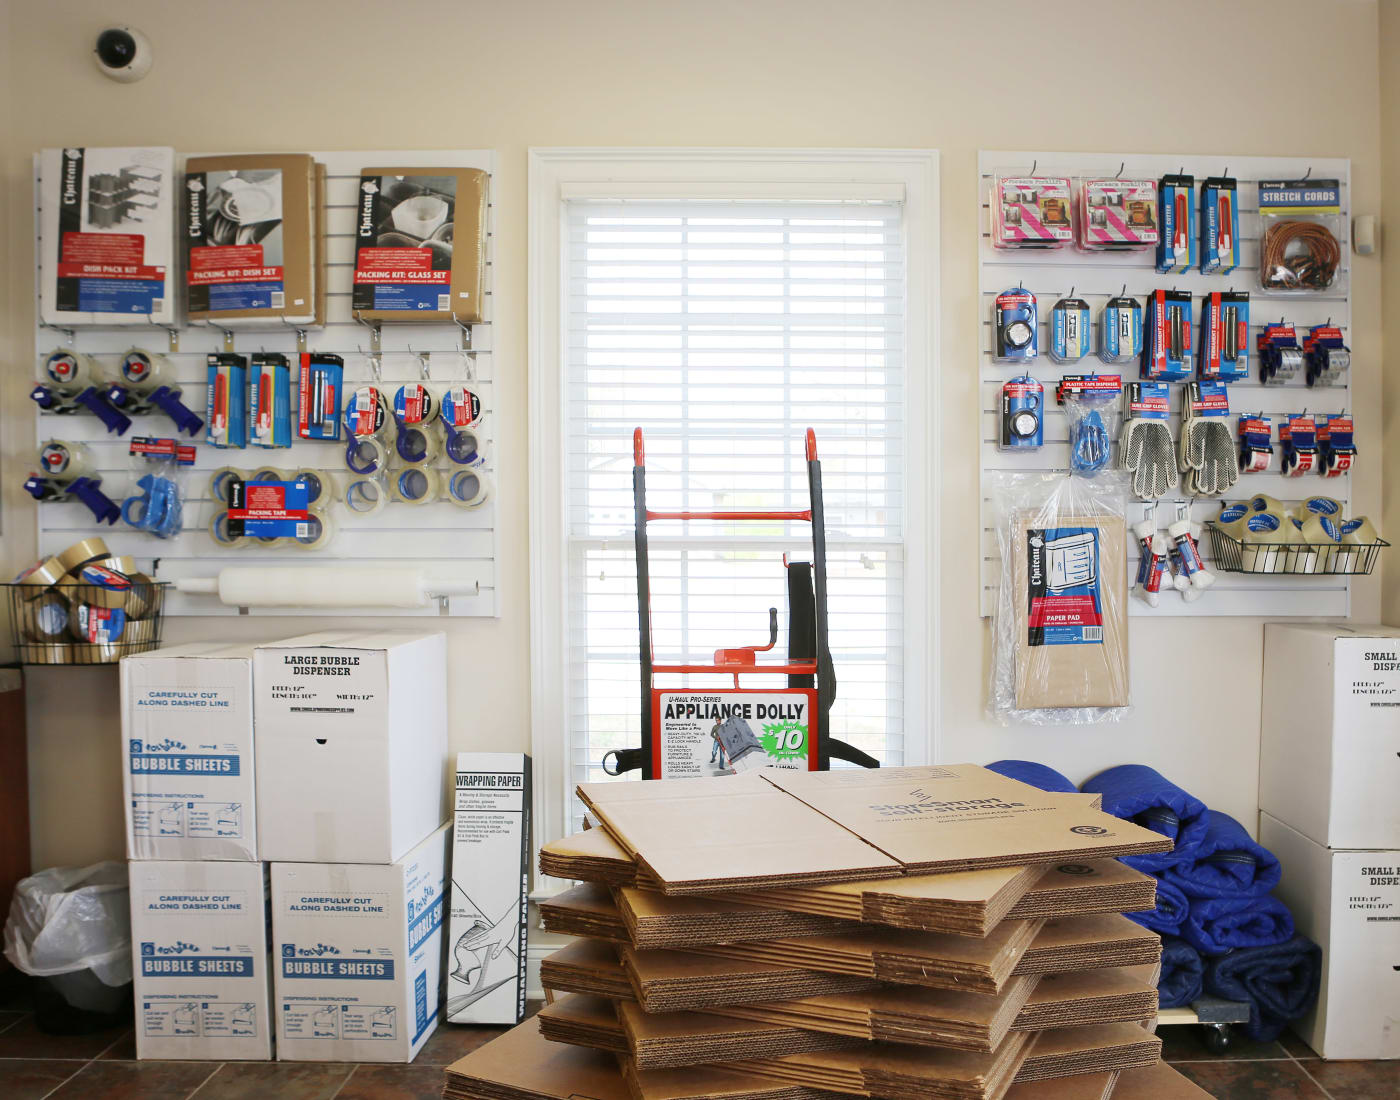 Packing and moving supplies for sale at StoreSmart Self-Storage in Watkinsville, Georgia